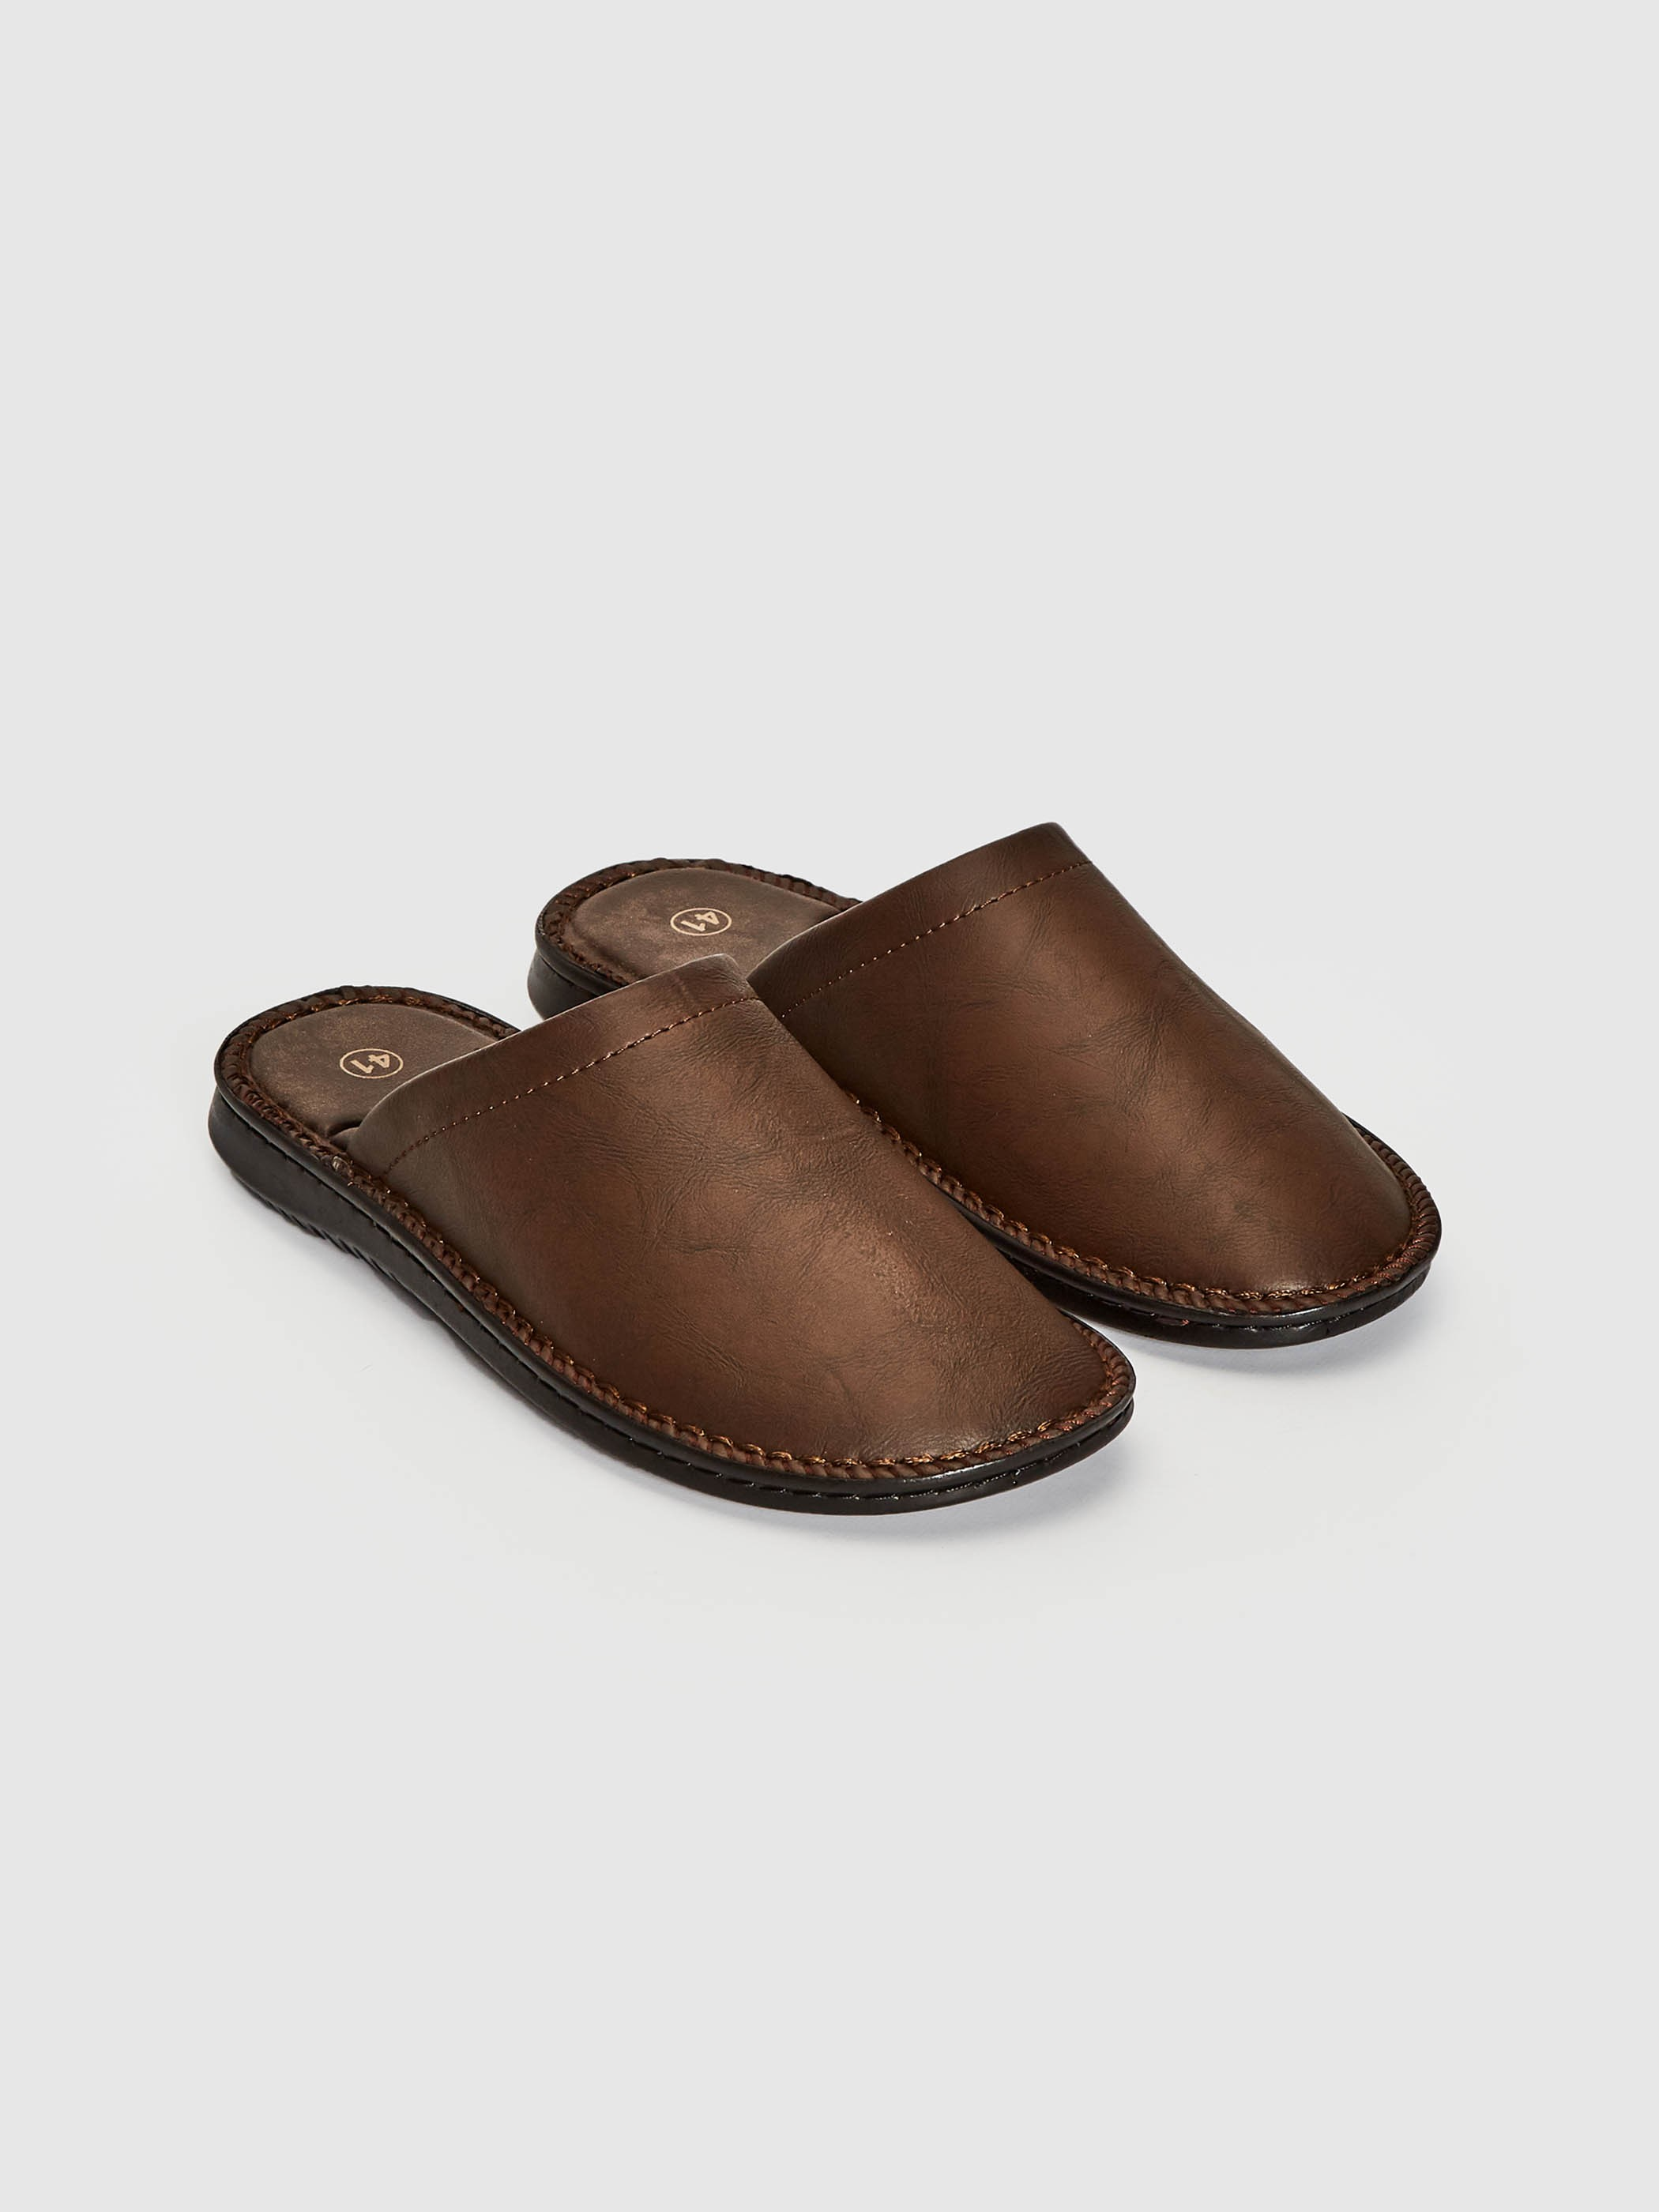 BROWN - Men's House Slippers - 0WII93Z8